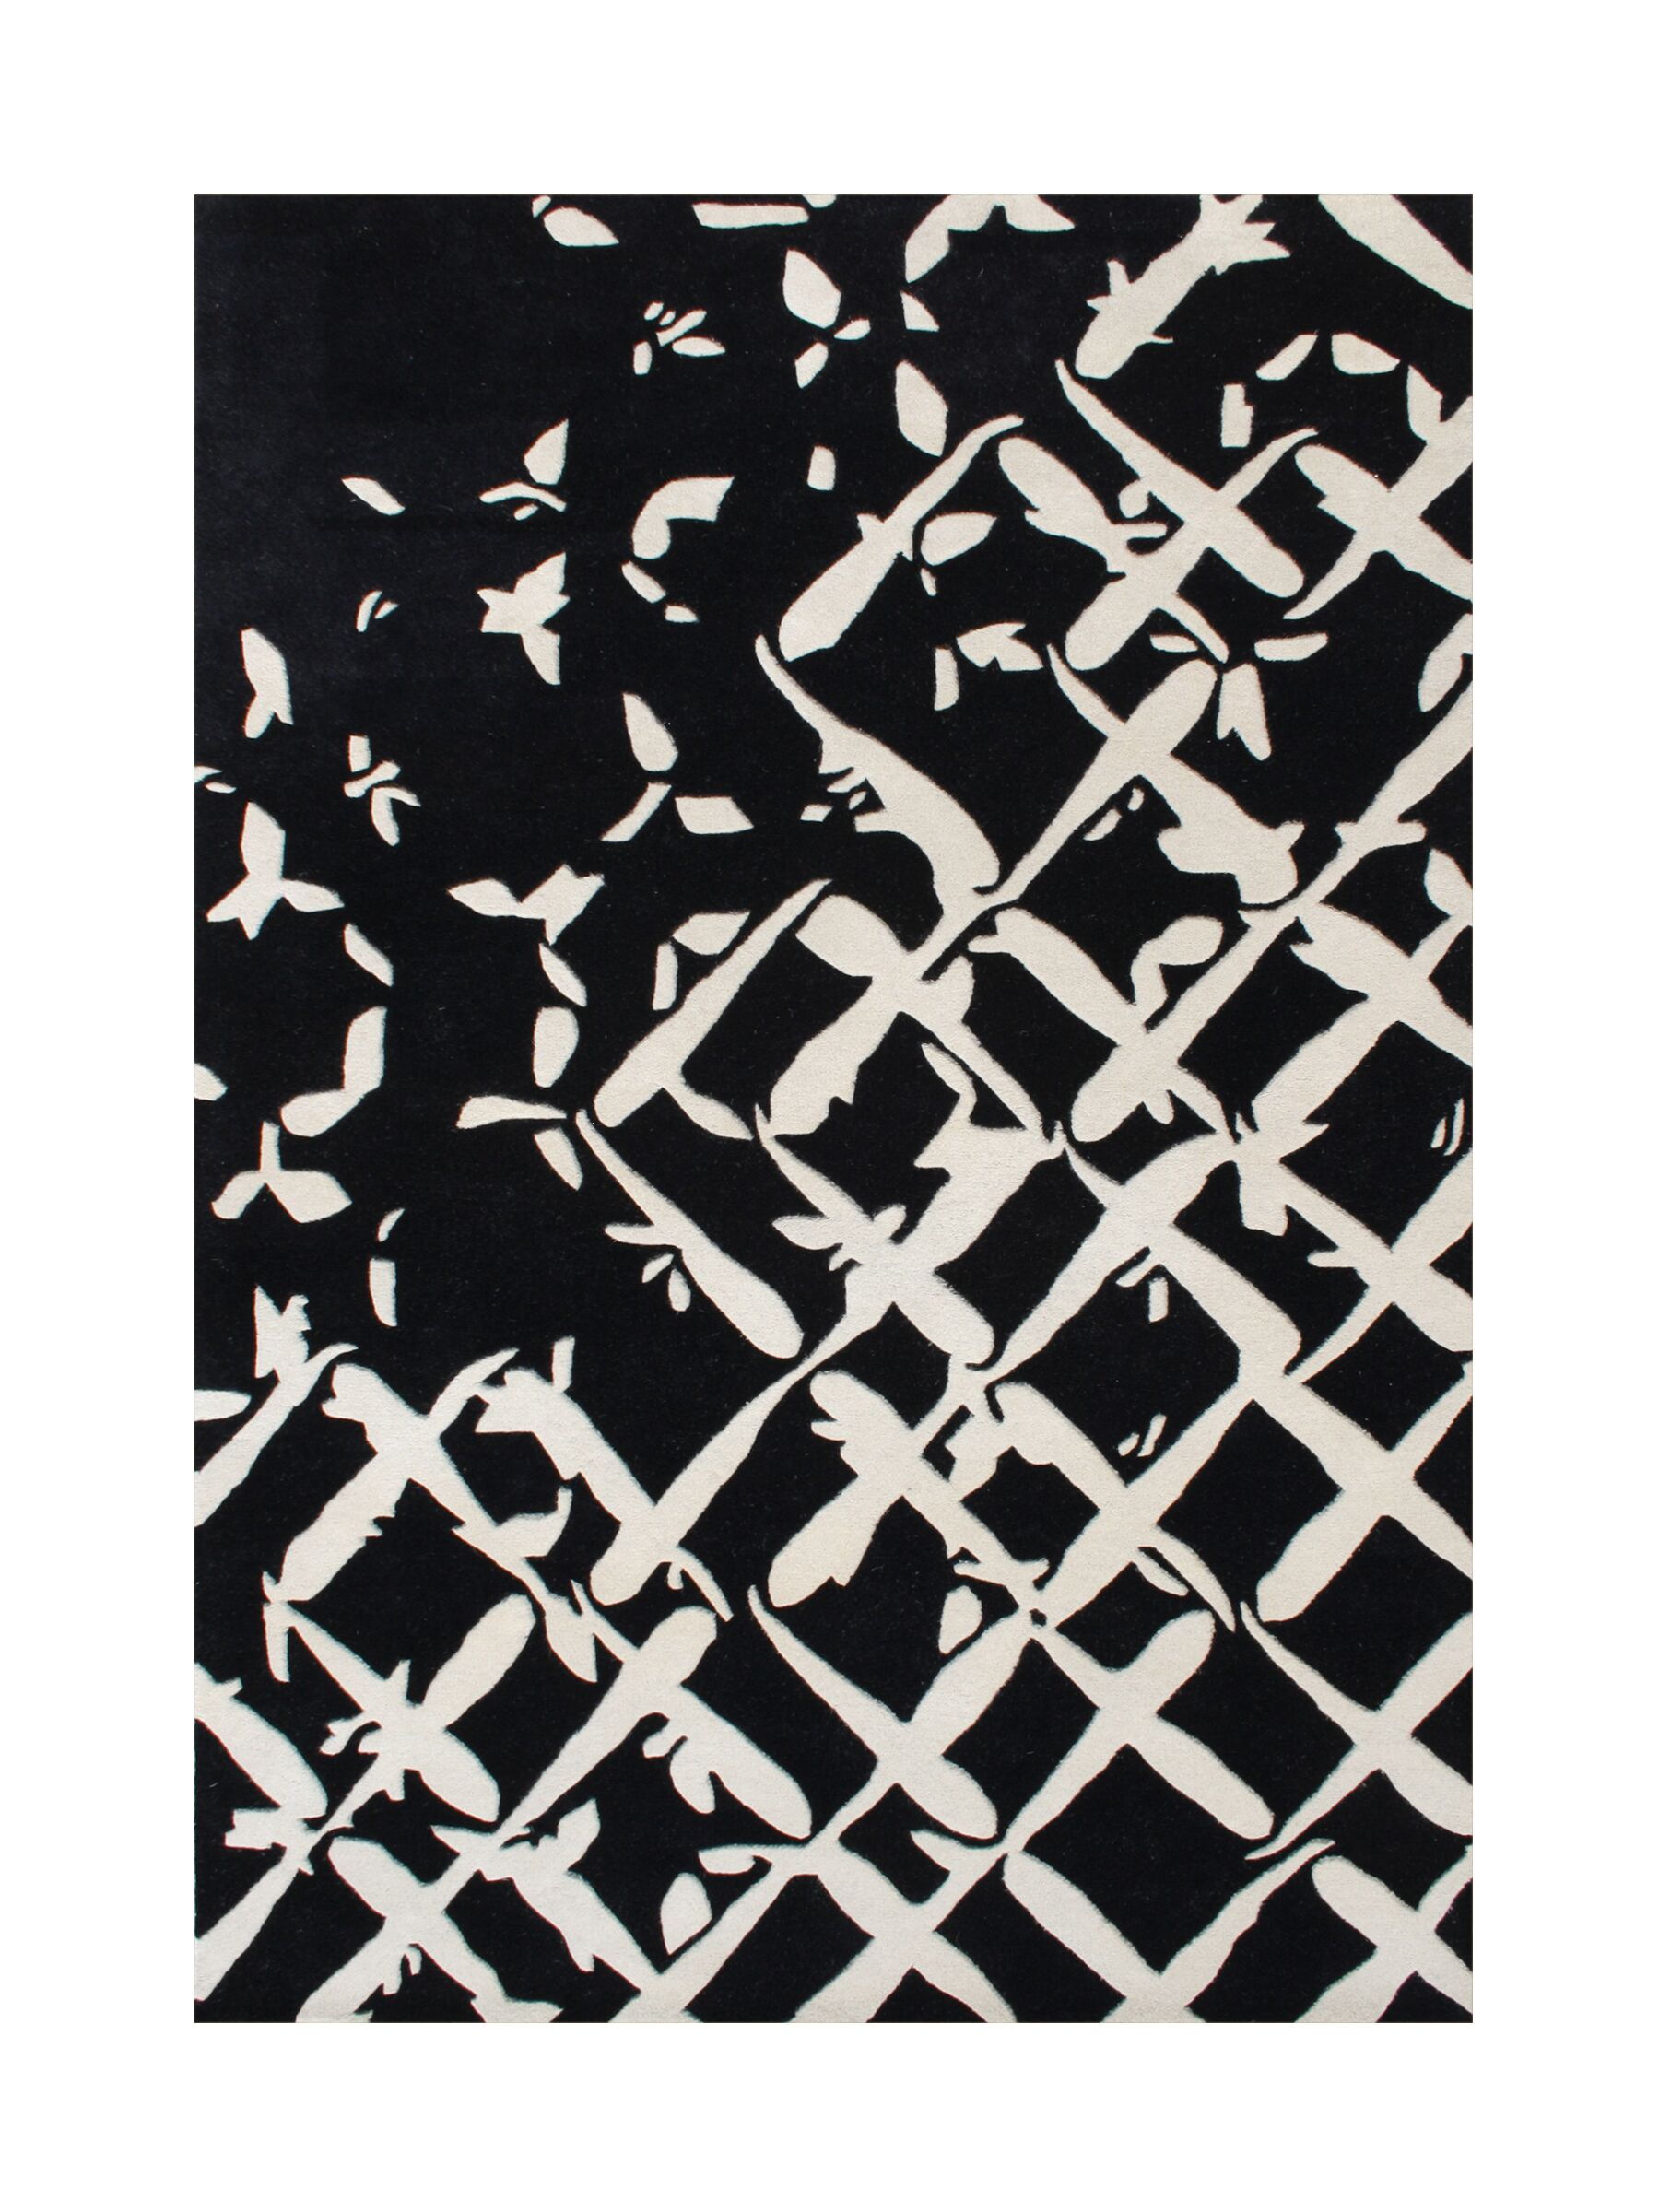 Wilbur Hand-Tufted Black/White Area Rug Rug Size: Rectangle 8' x 10'